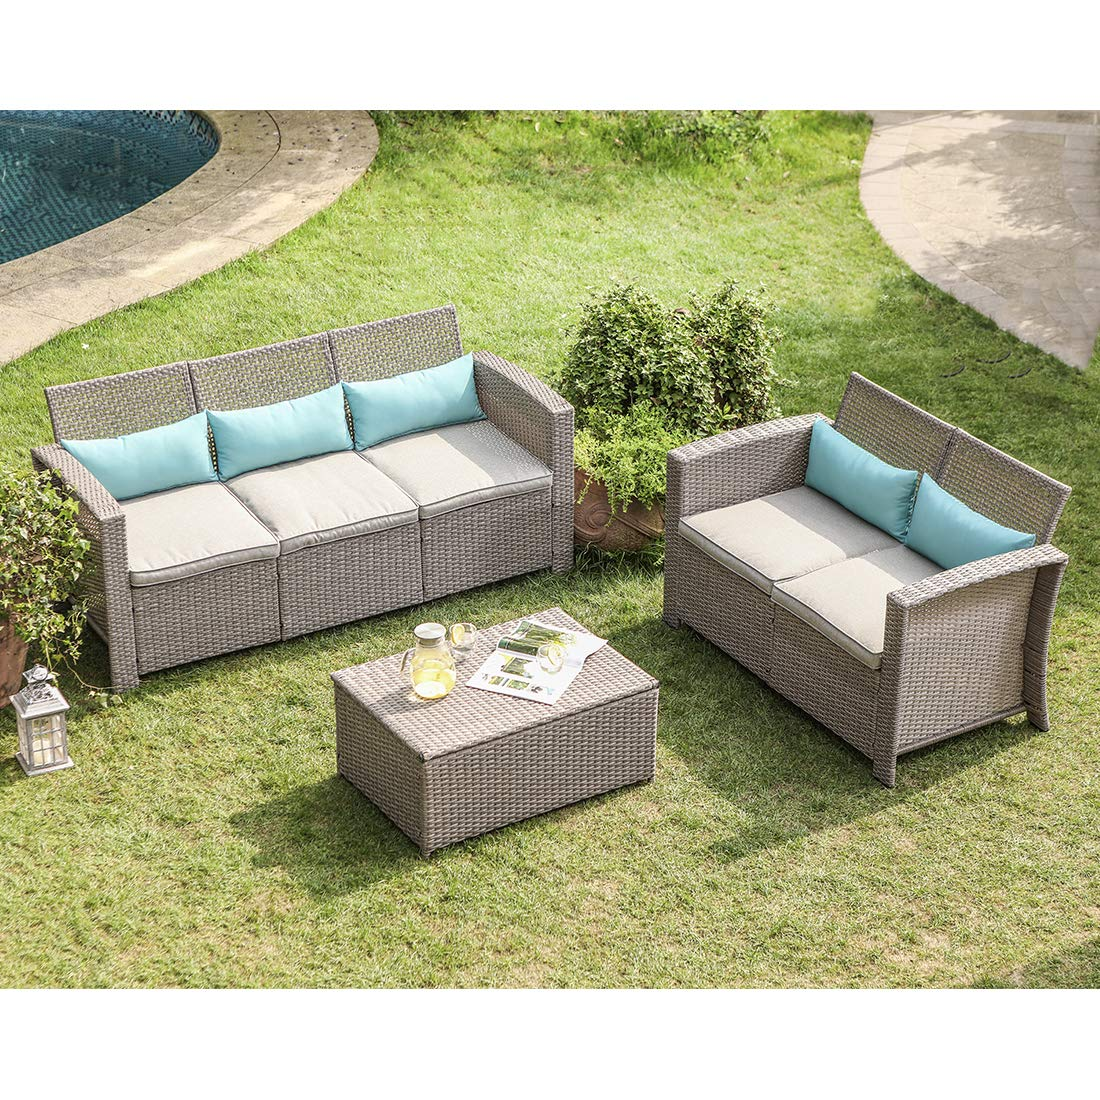 COSIEST 3-Piece Outdoor Furniture Set Taupe Wicker Sectional Sofa w Warm Gray Thick Cushions, Storage Chest and 5 Turquoise Lumbar Pillows for Garden, Pool, Backyard by COSIEST